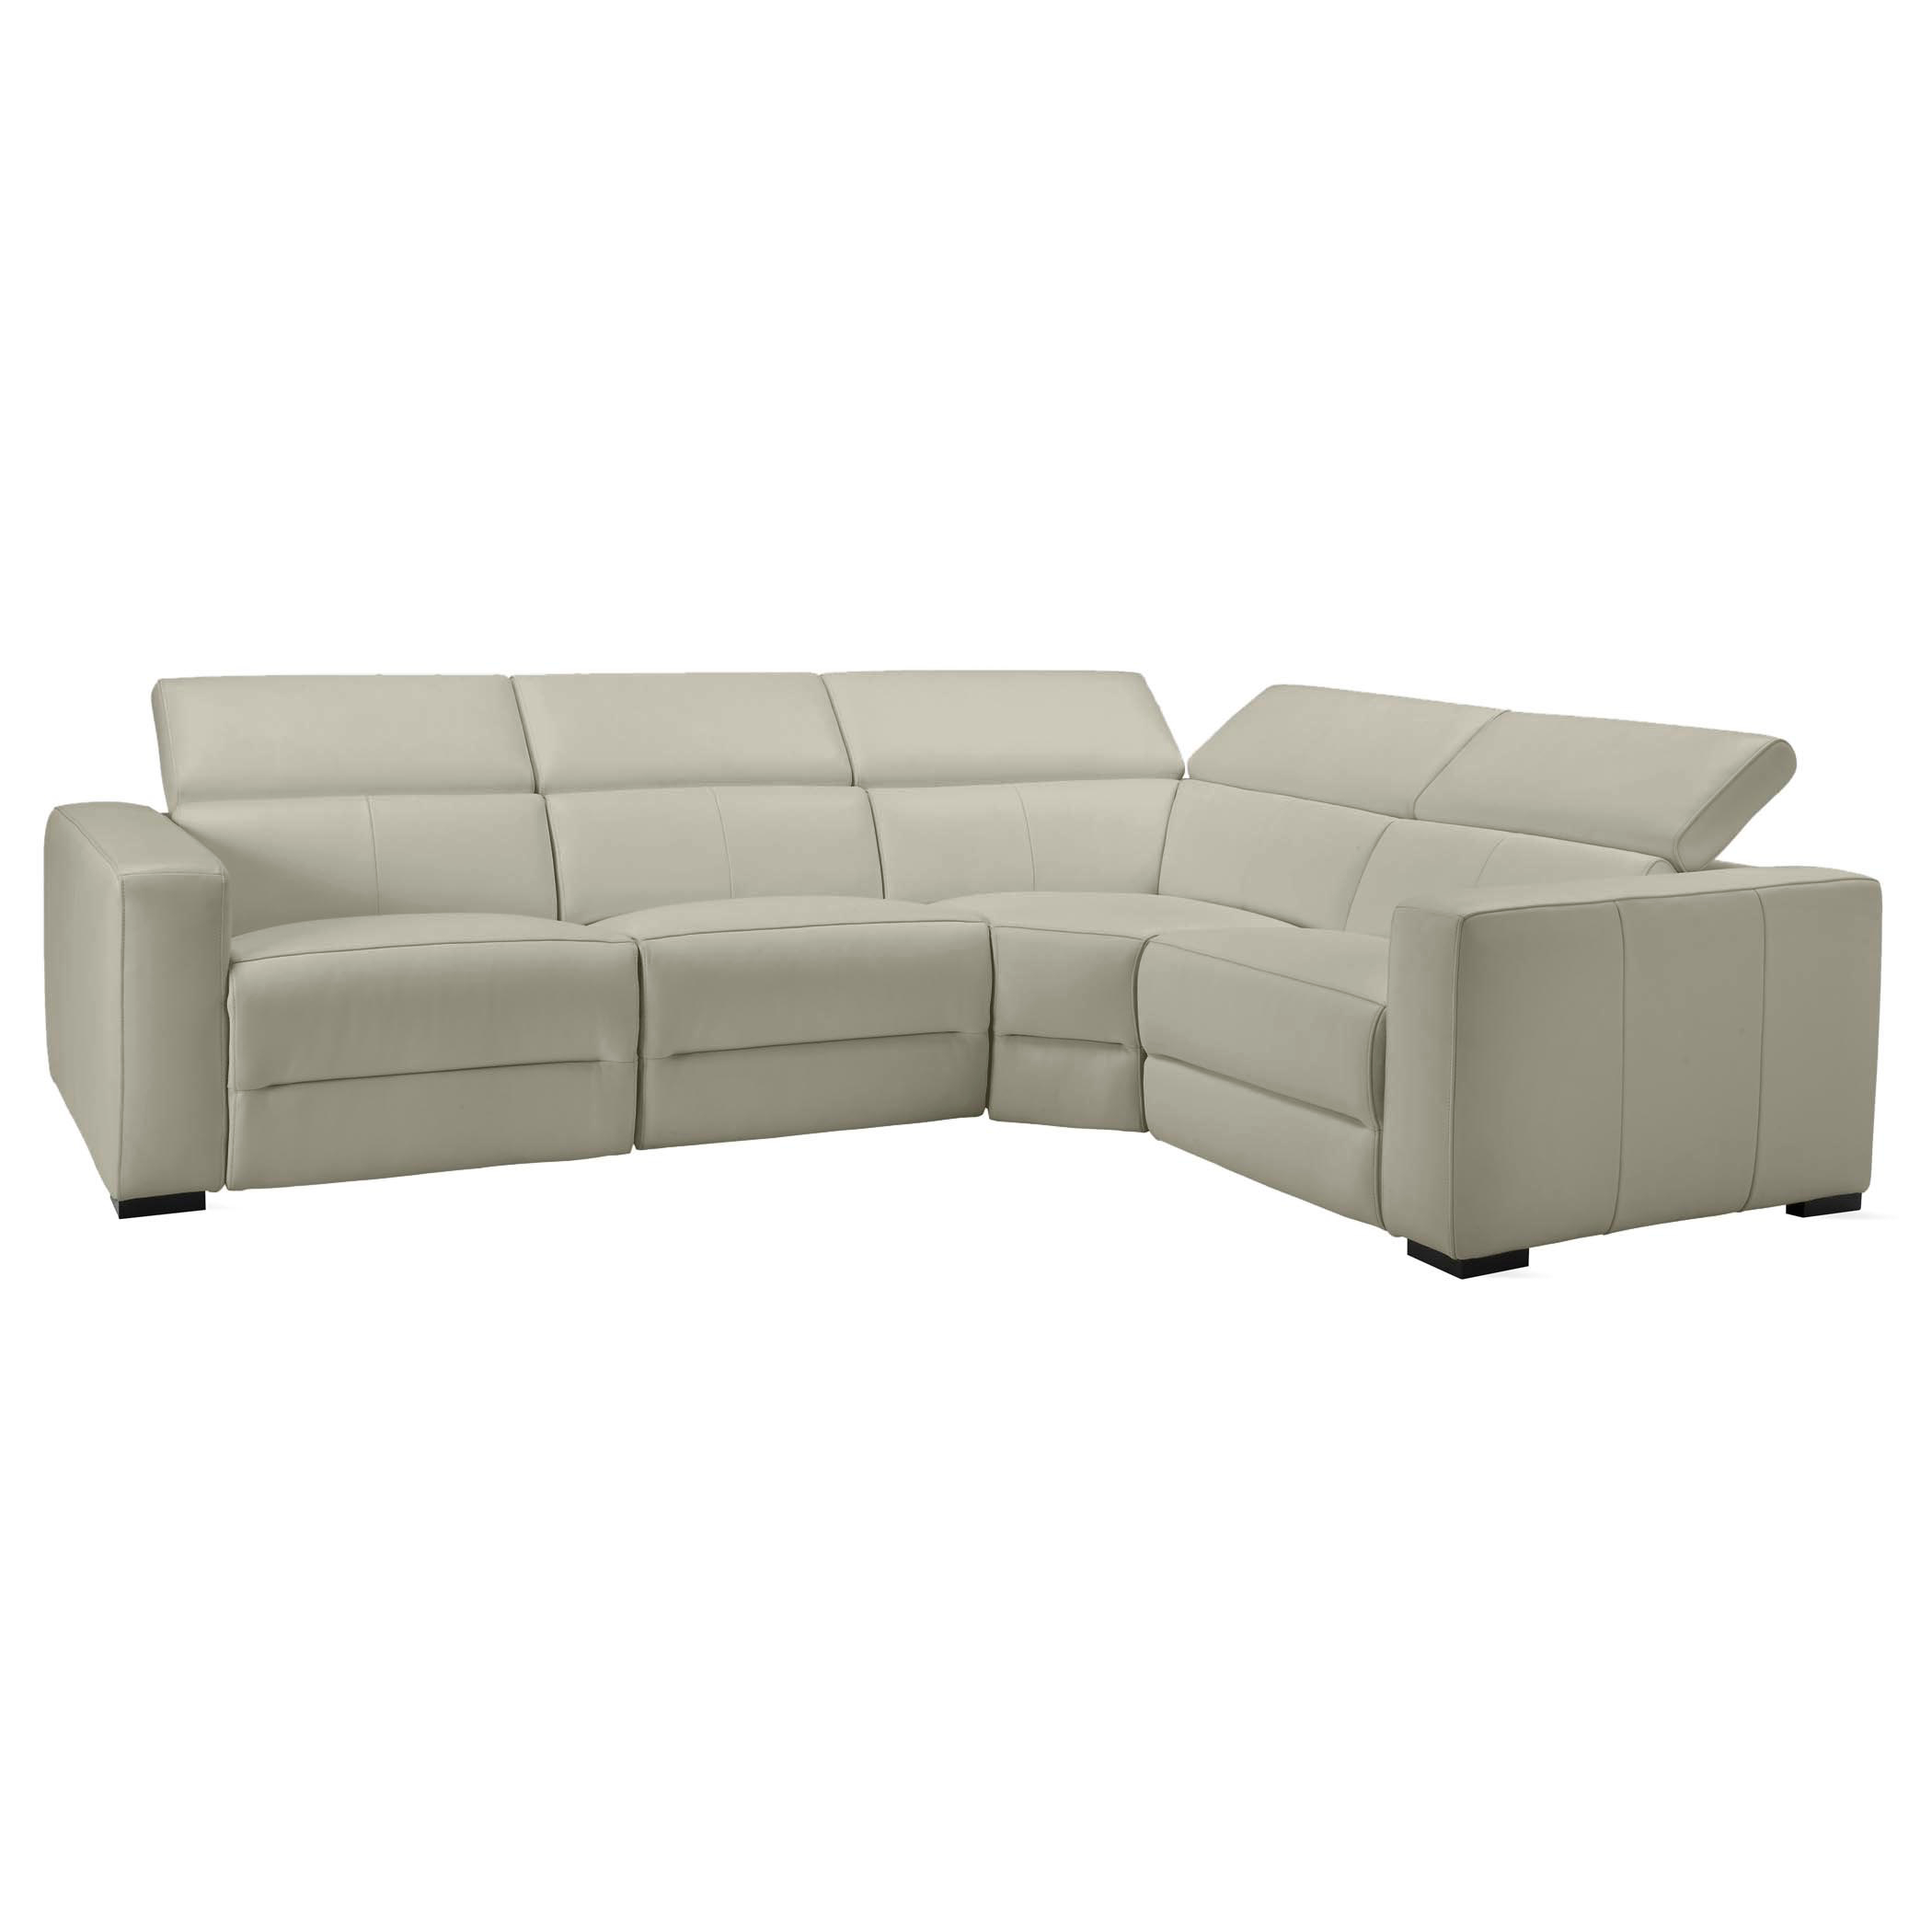 4 piece sectional - right arm facing (shown)